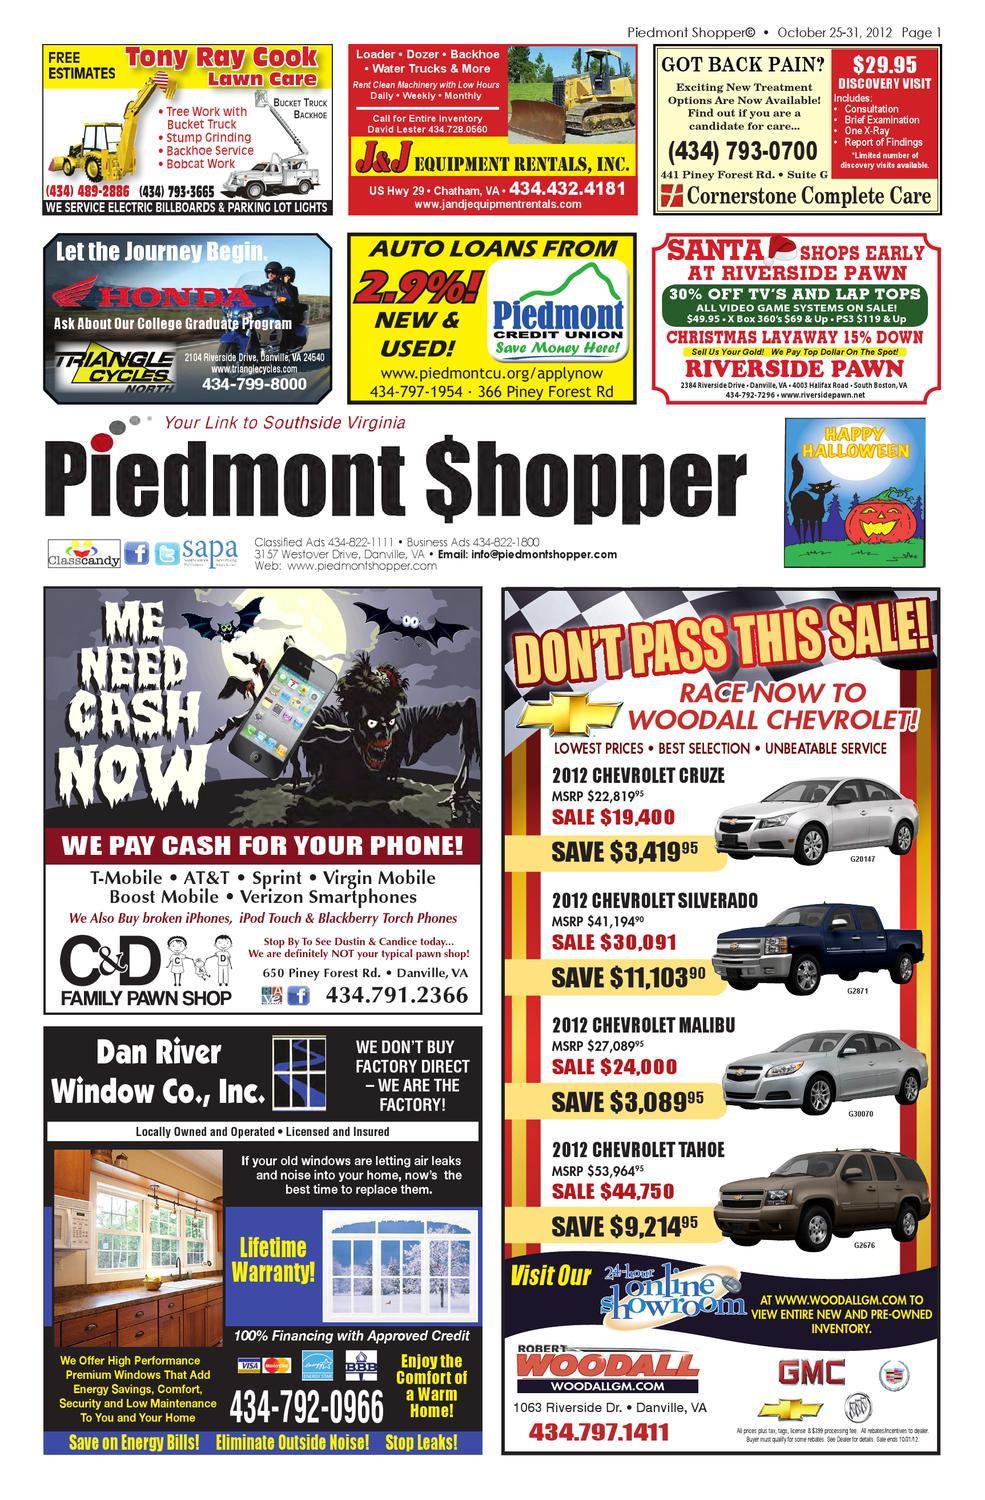 Piedmont Shopper by piedmont shopper - issuu baccbed93